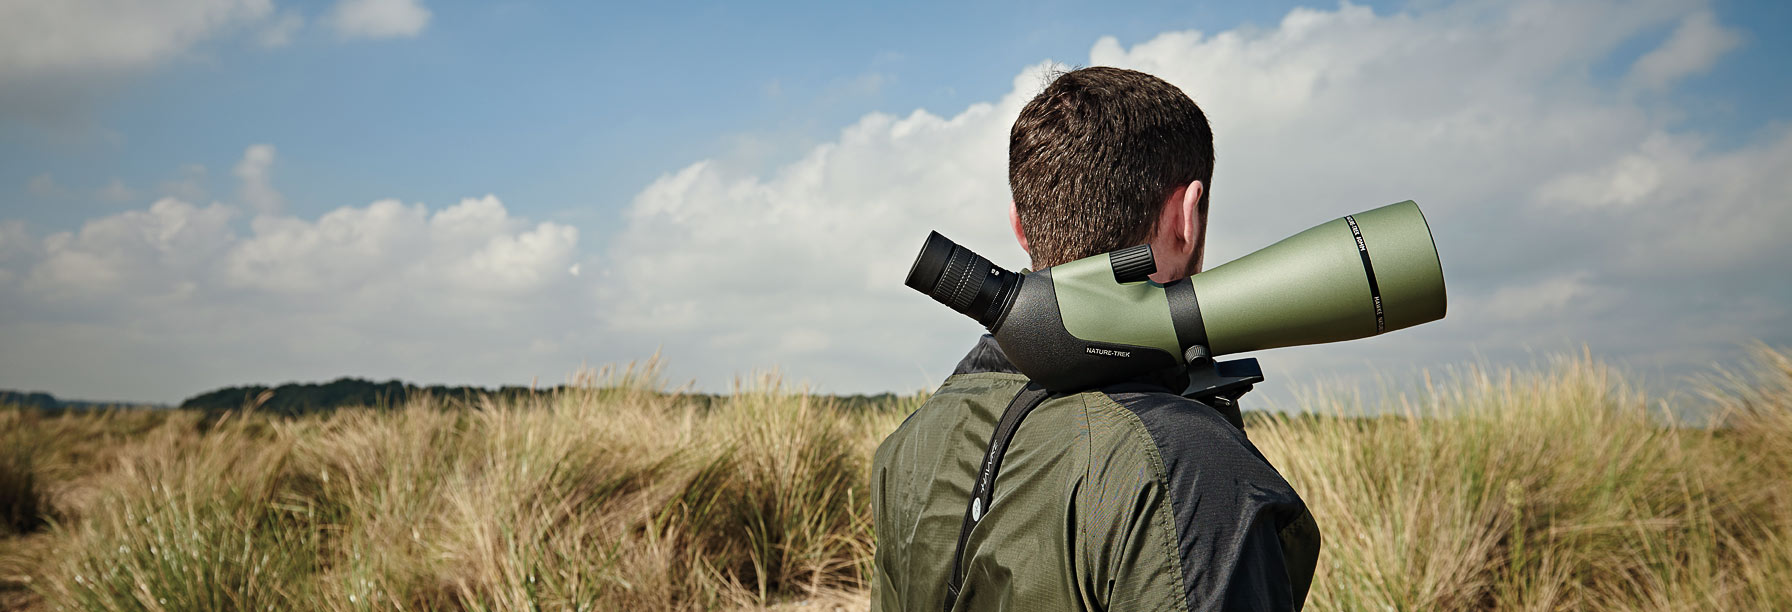 How to maintain your spotting scope